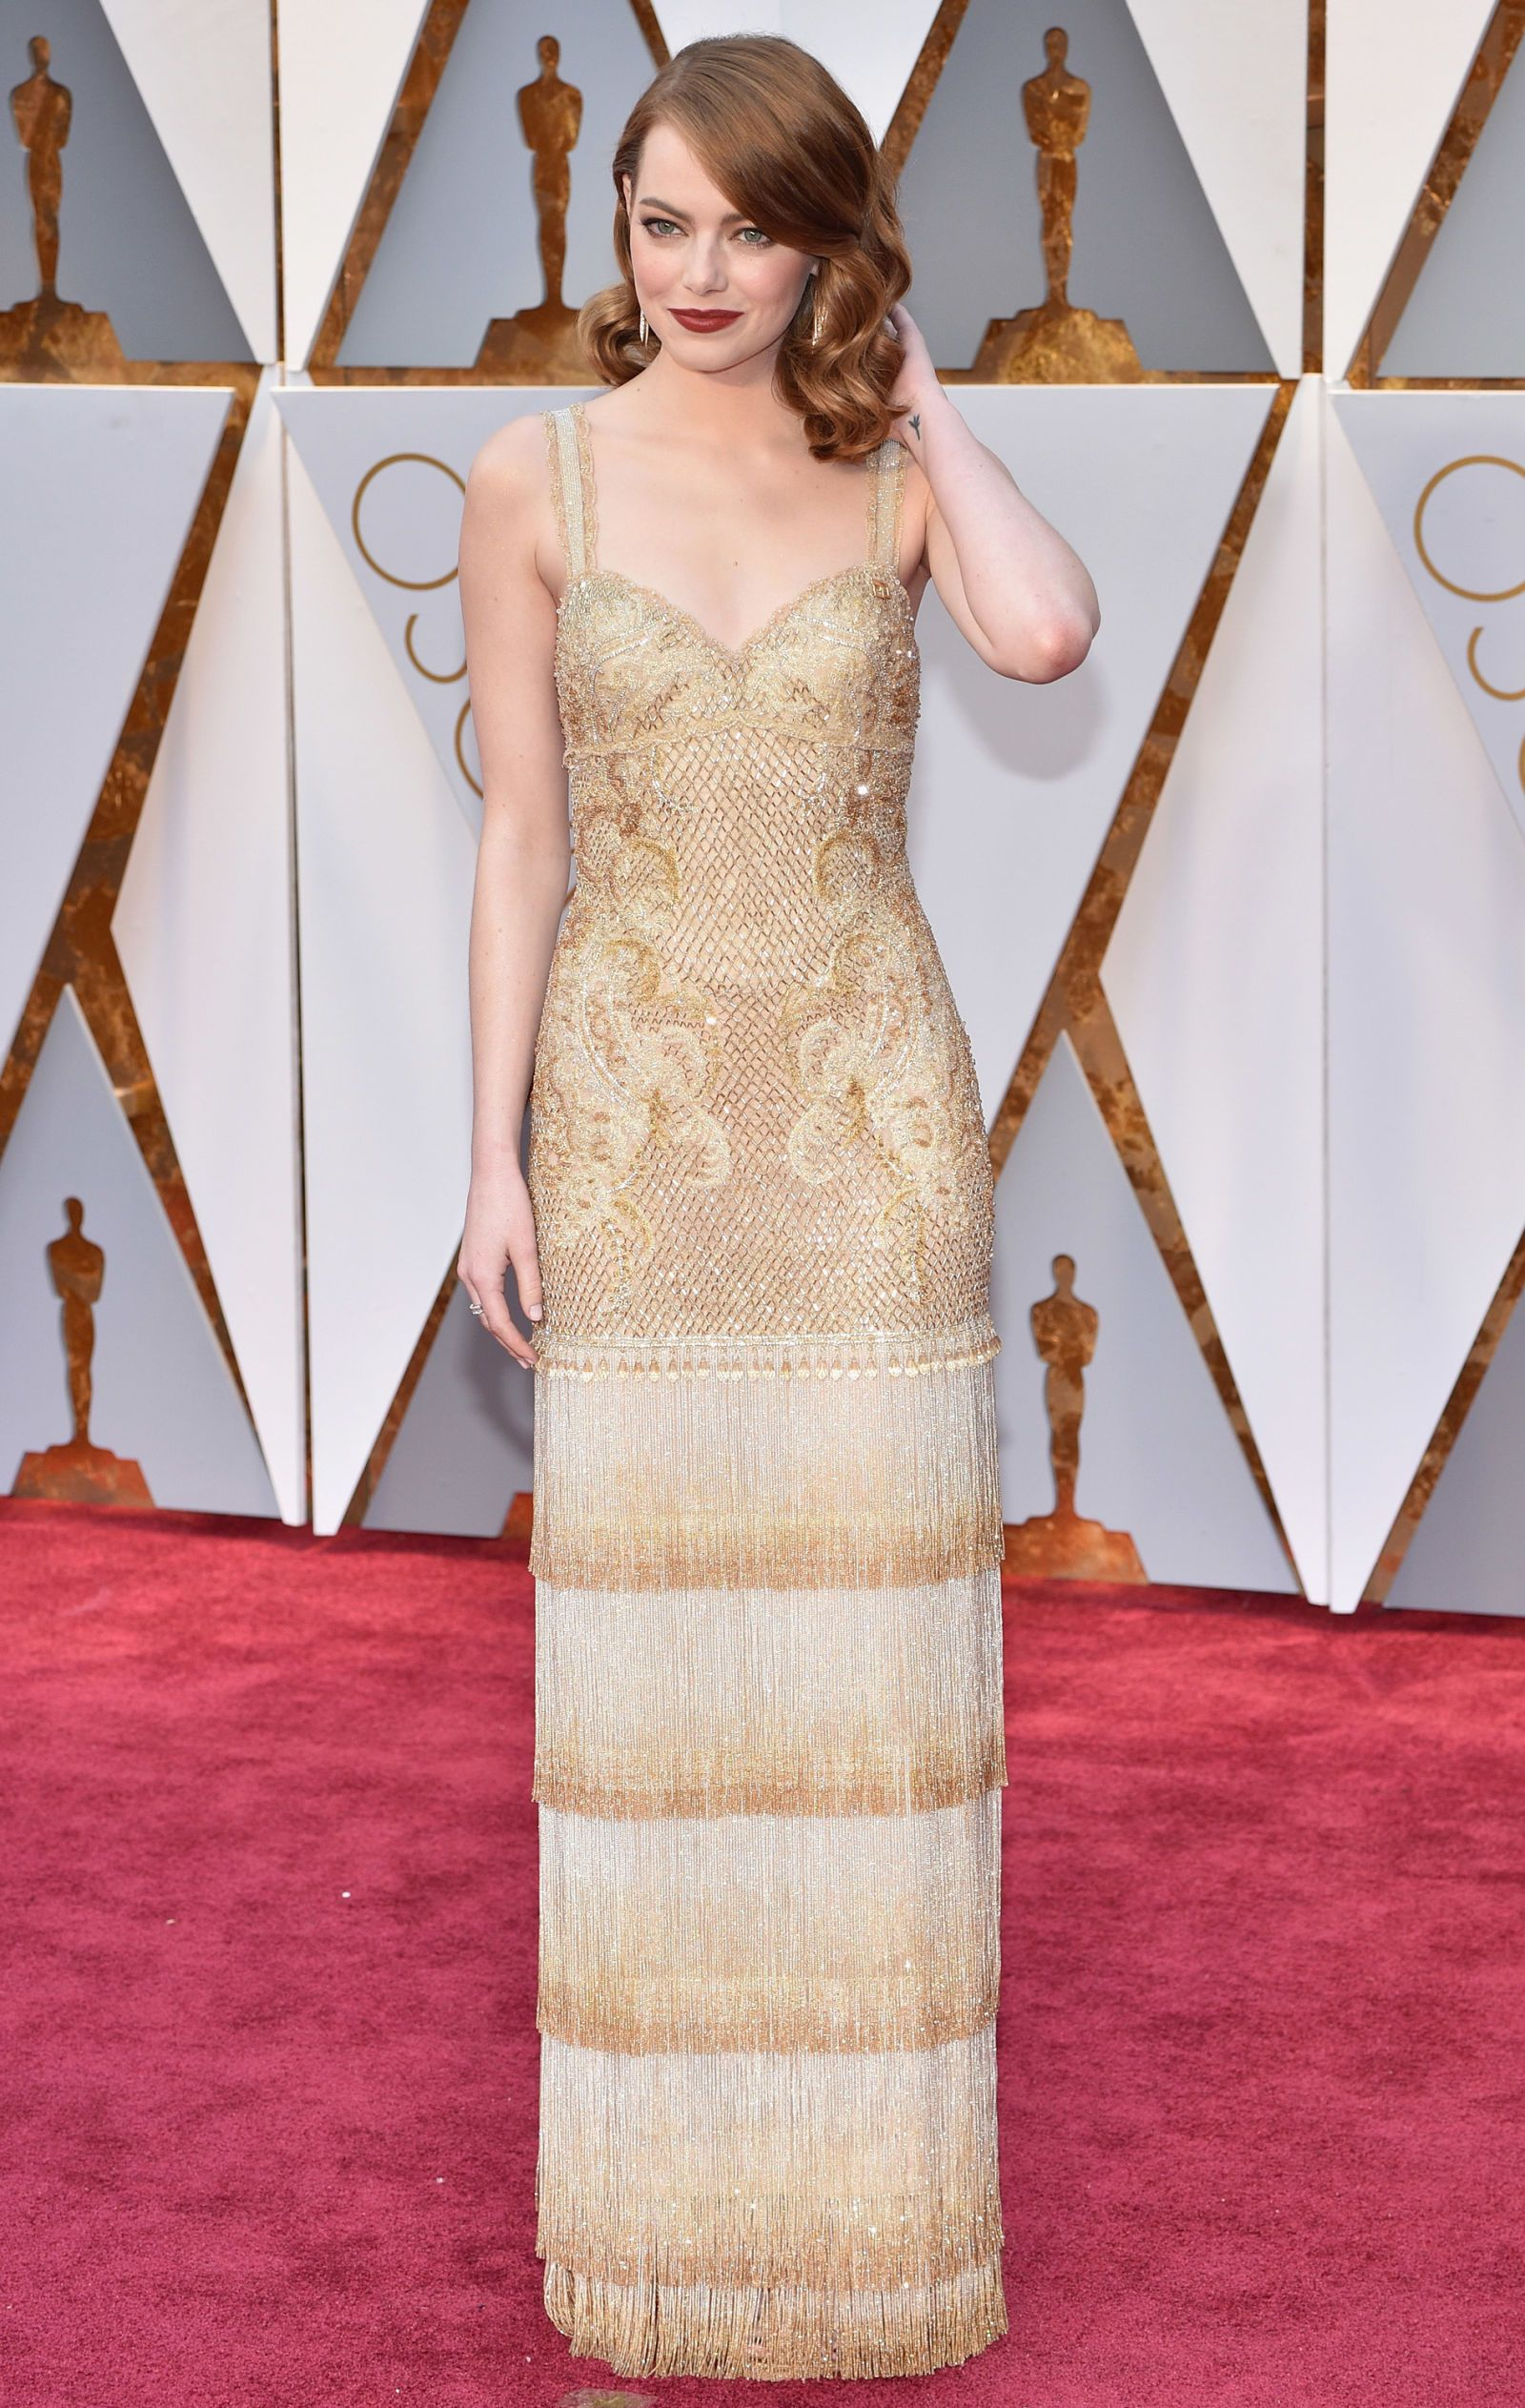 Roter Teppich Hollywood Kleider You Won 39t Believe How Long Emma Stone 39s Oscars Dress Took